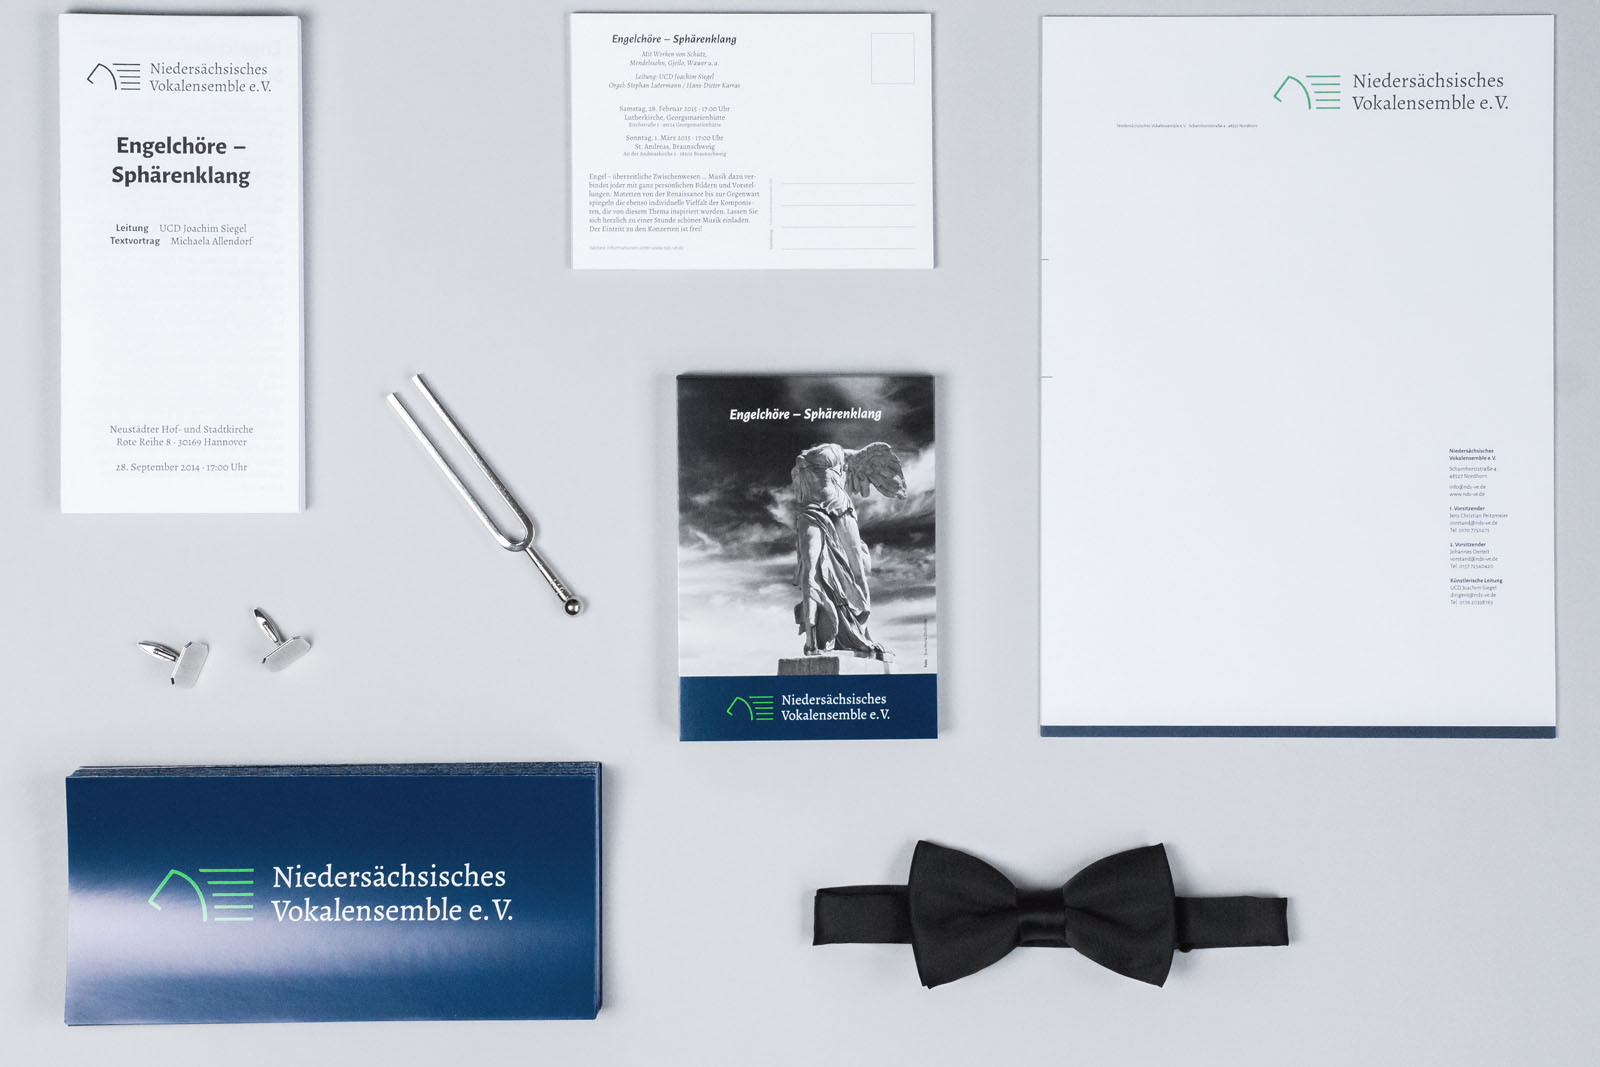 Concert program, post cards, letter head and flyer together with cuffs, a bow tie and a tuning fork.